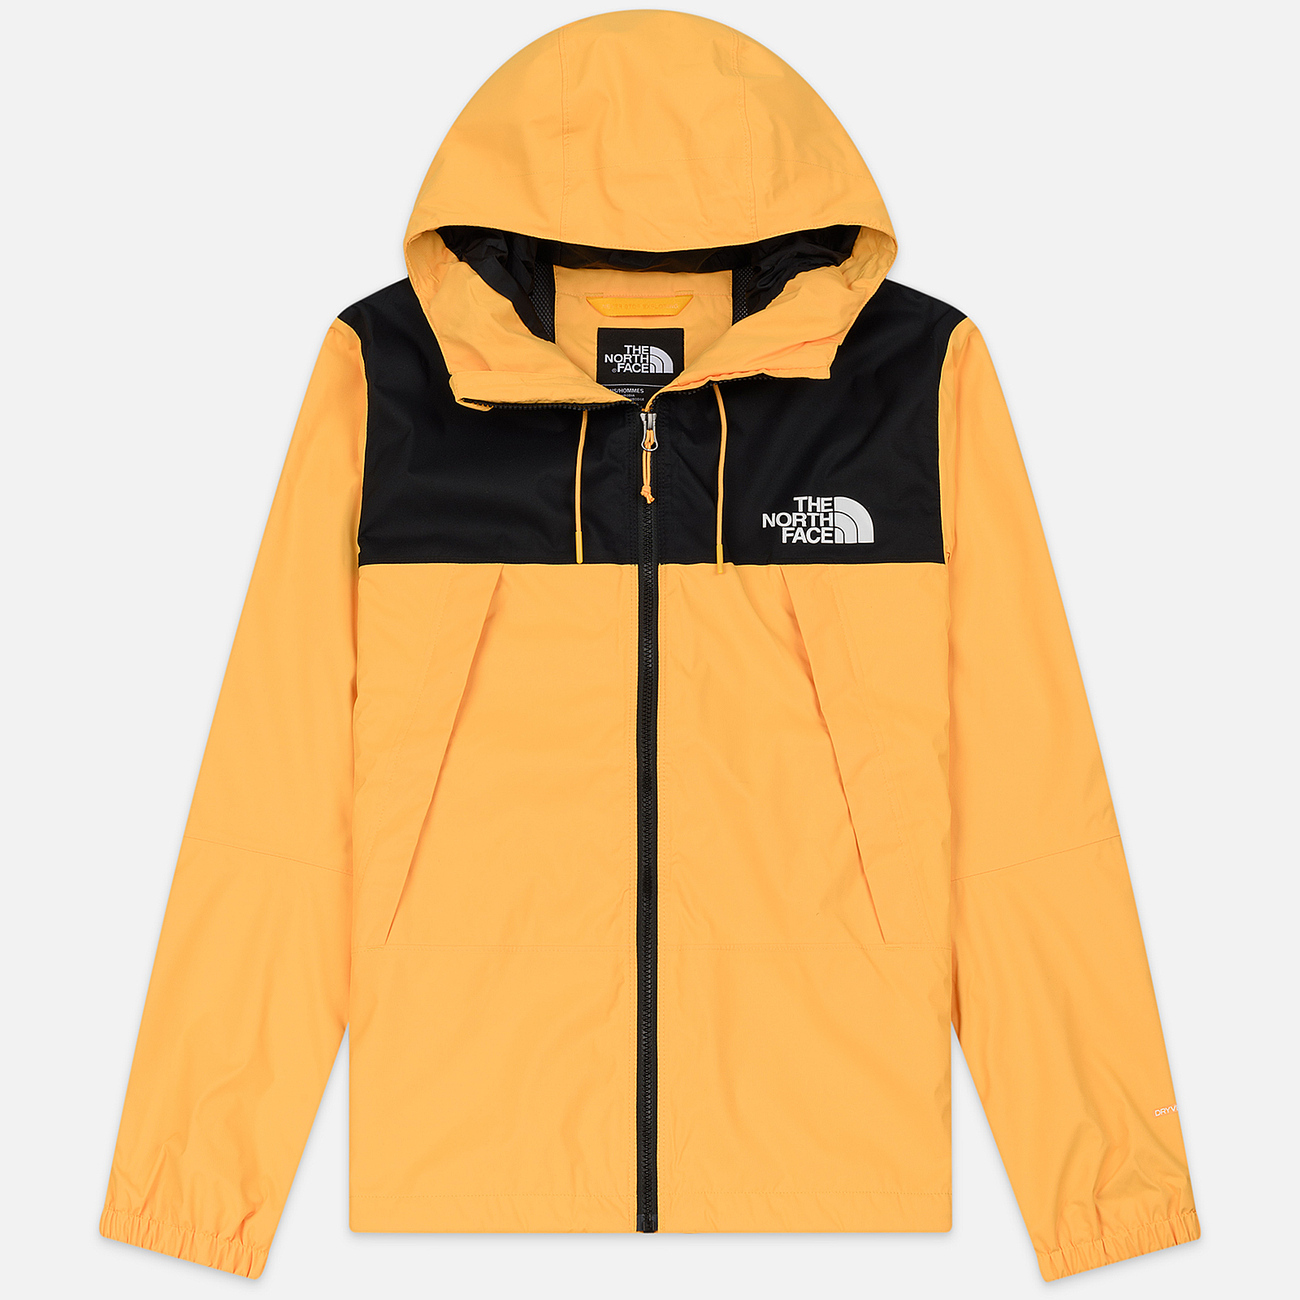 Мужская куртка ветровка The North Face 1990 Mountain Quest TNF Yellow